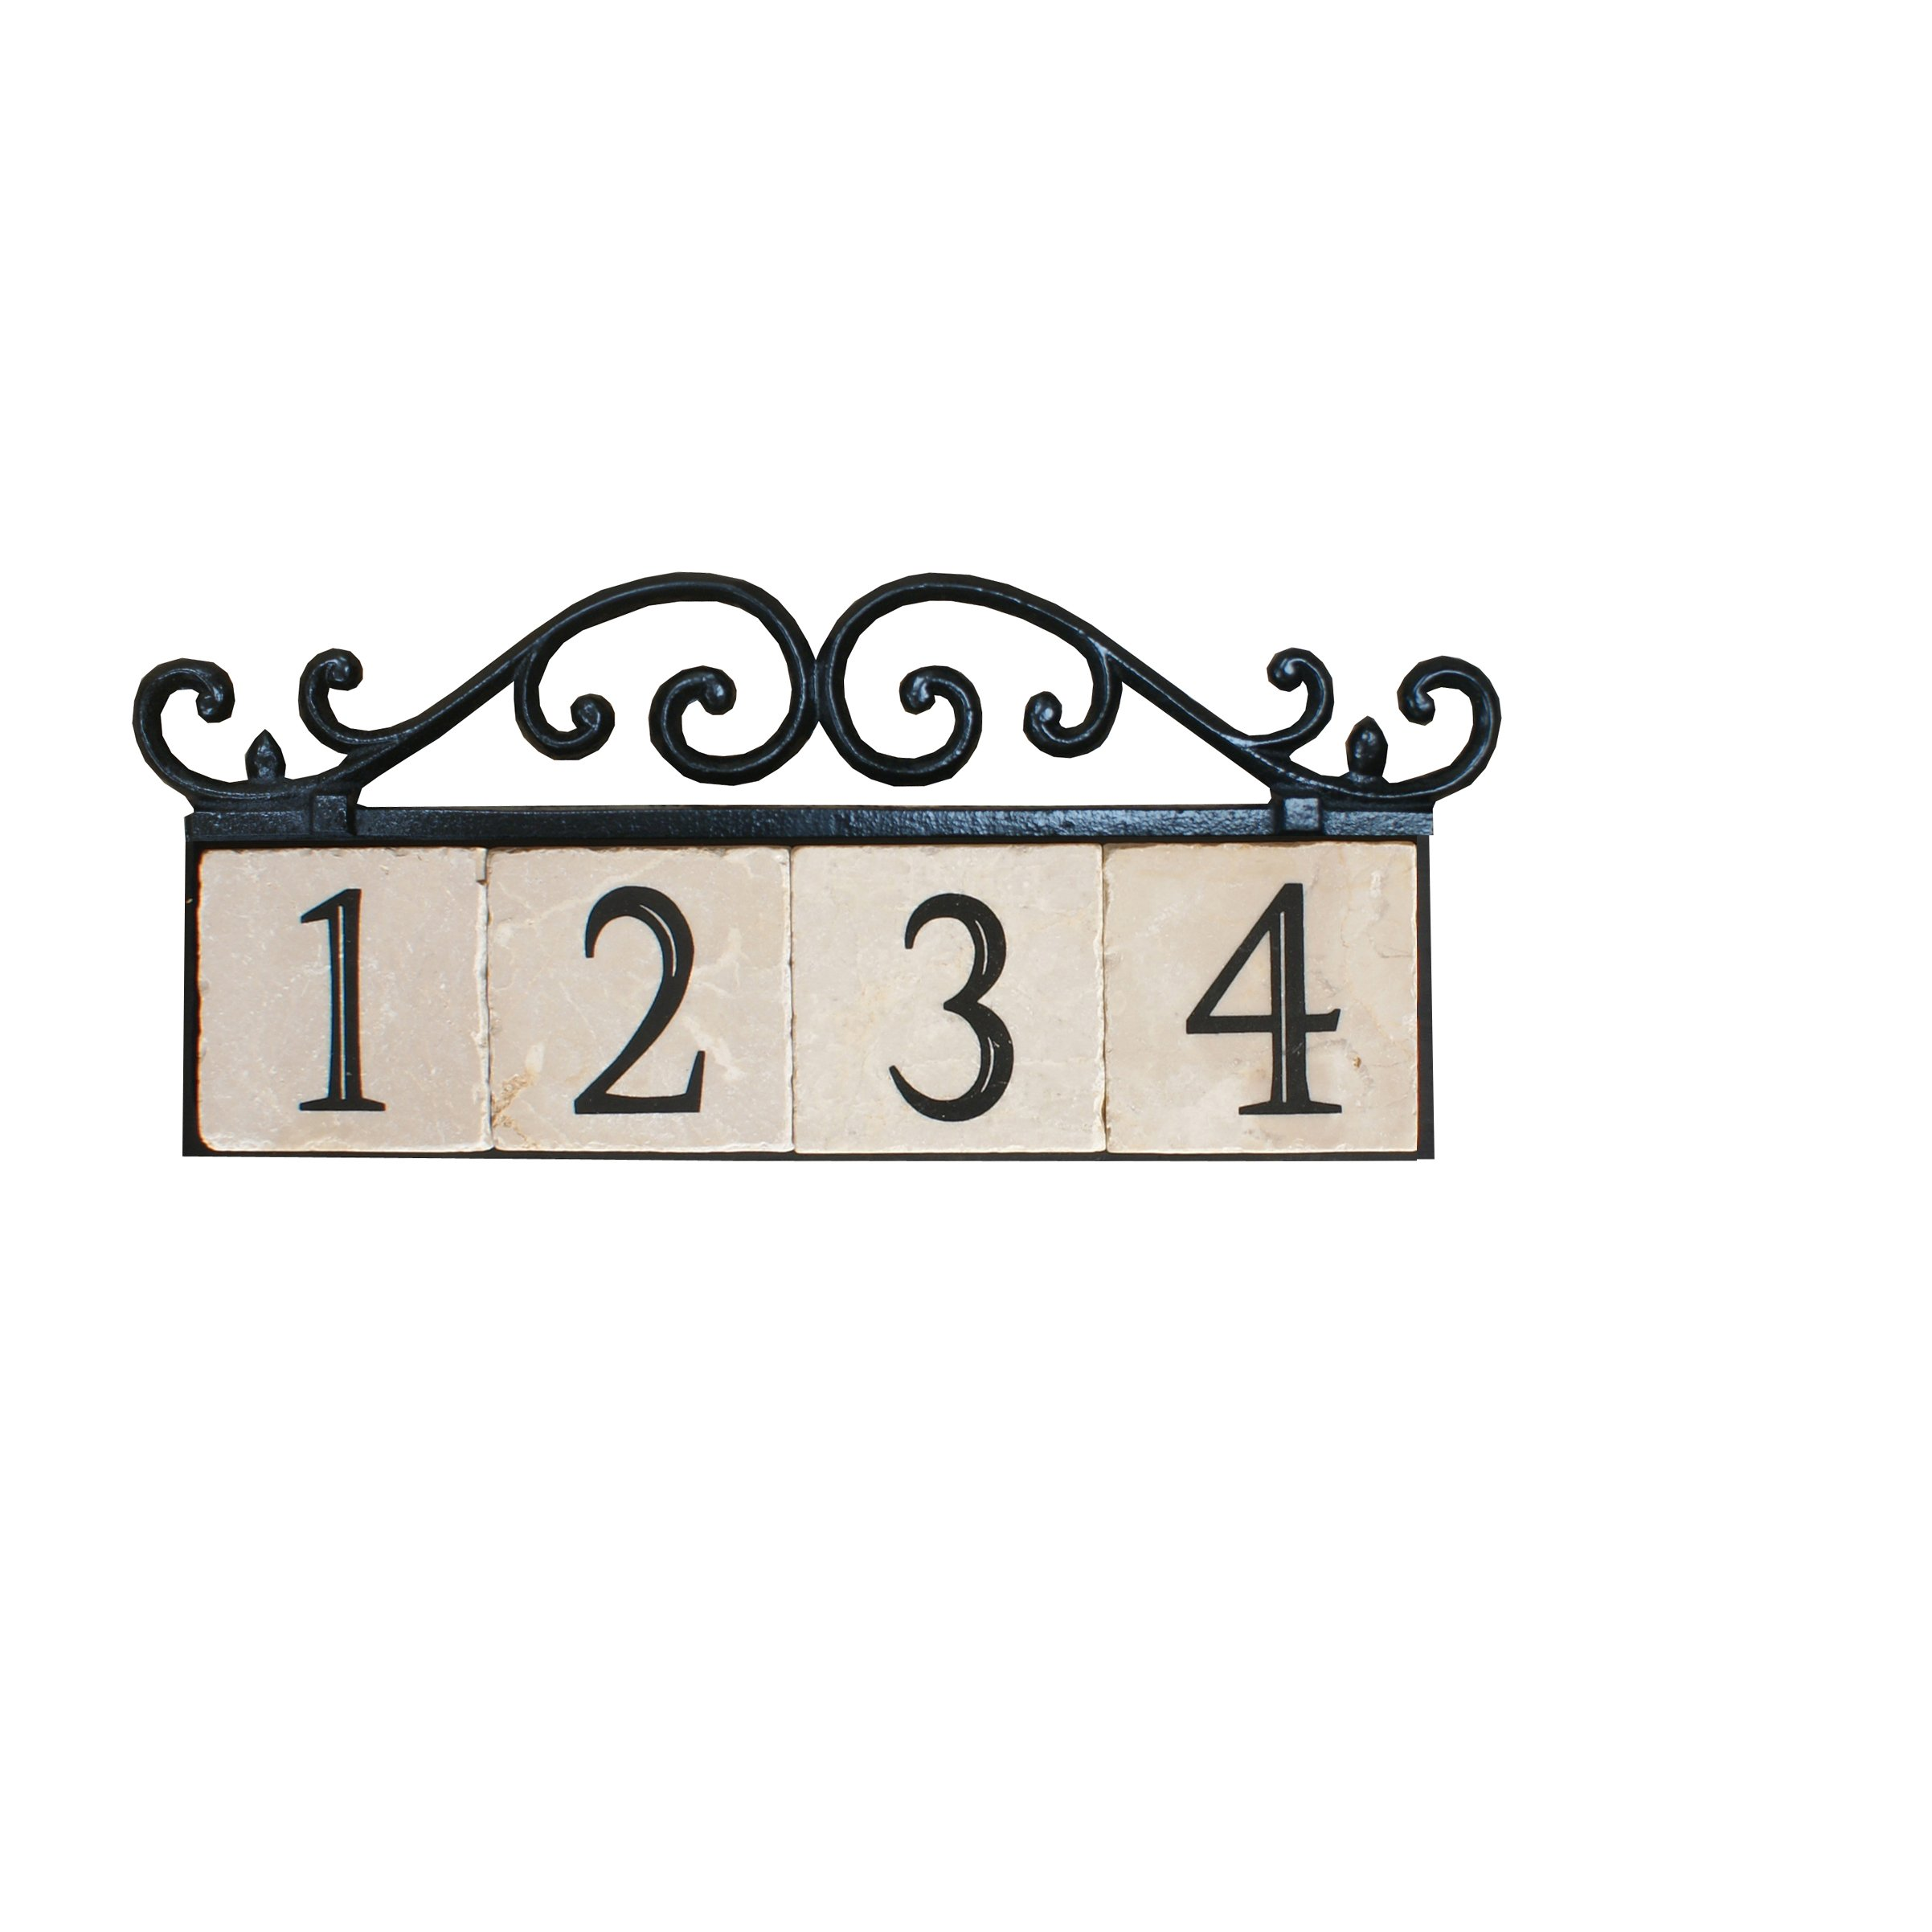 NACH KA House Address Sign/Plaque - Old World, 4 Numbers, Iron, 17 x 8 x 1''